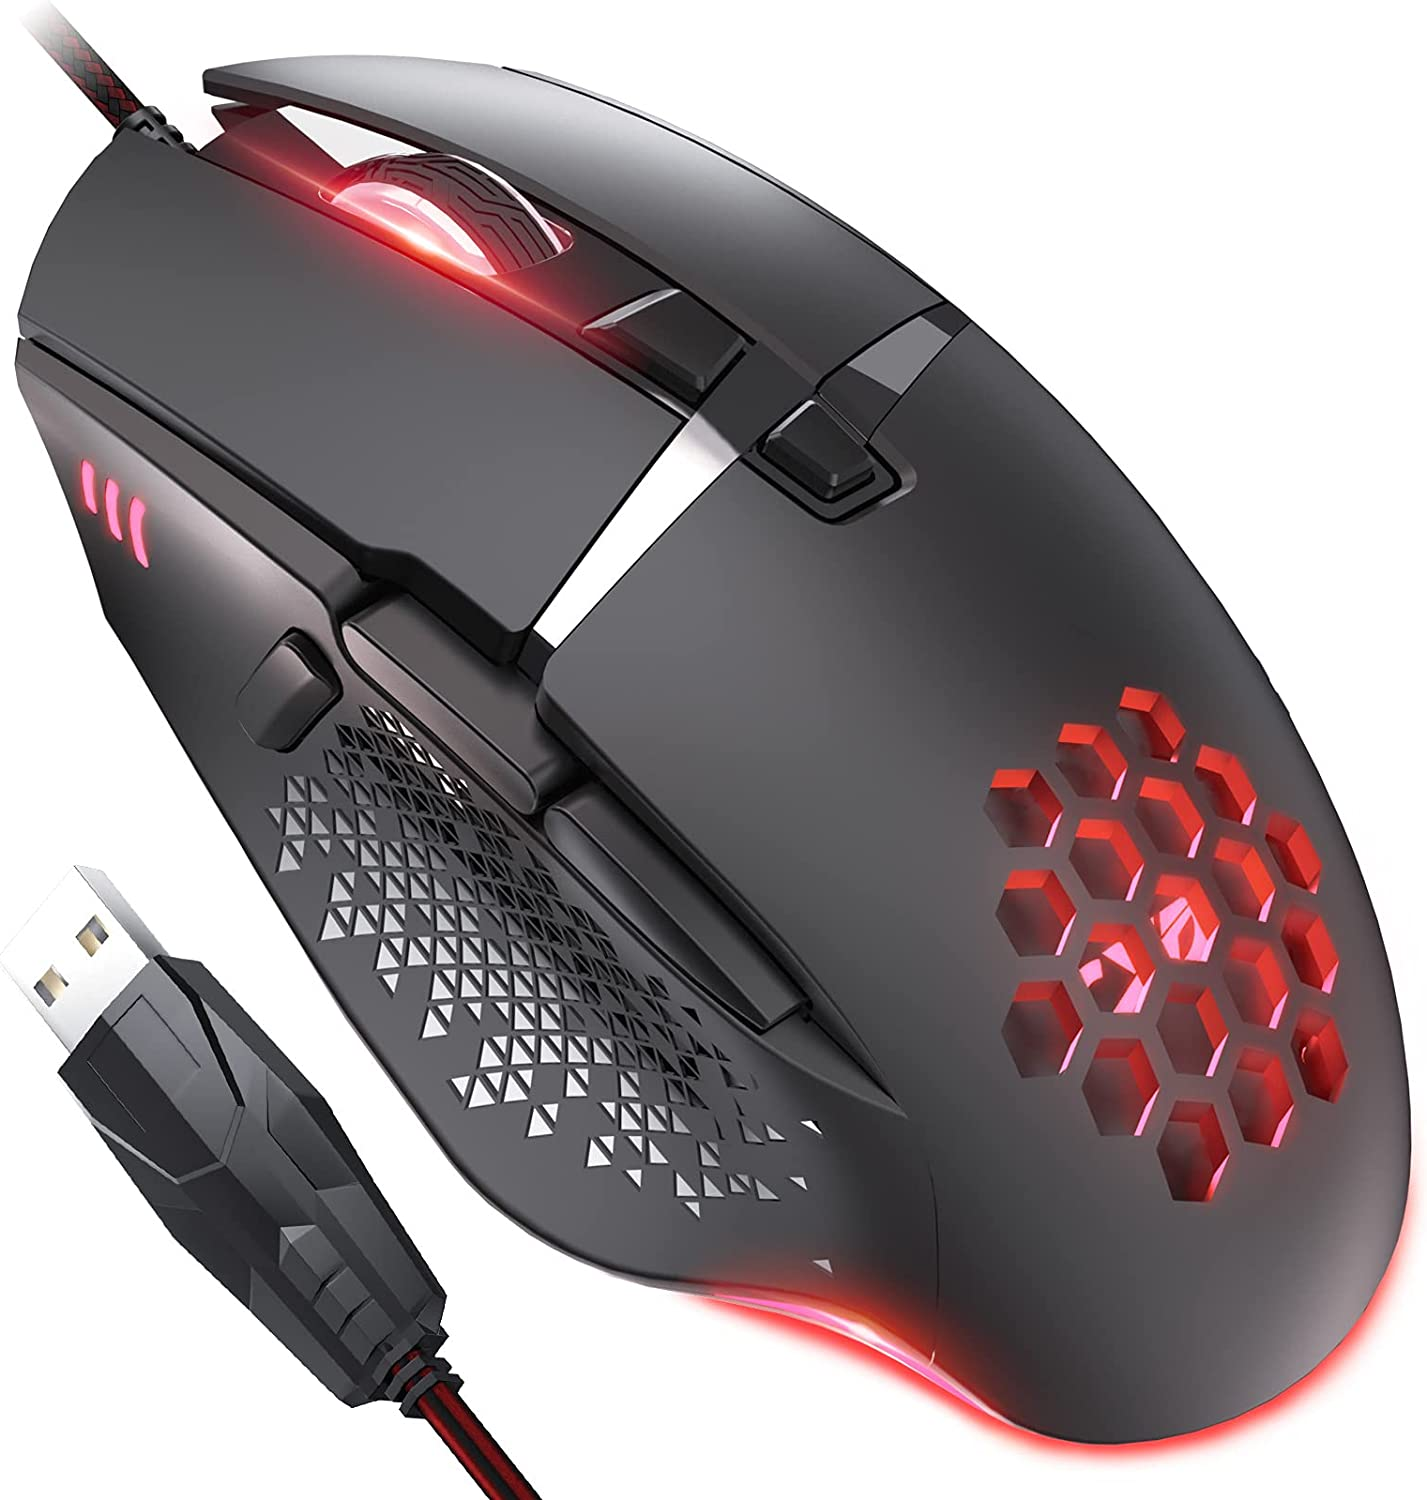 QYD Gaming Wired Mouse Lightweight USB Computer 8 unisex Prog with Mice Max 86% OFF